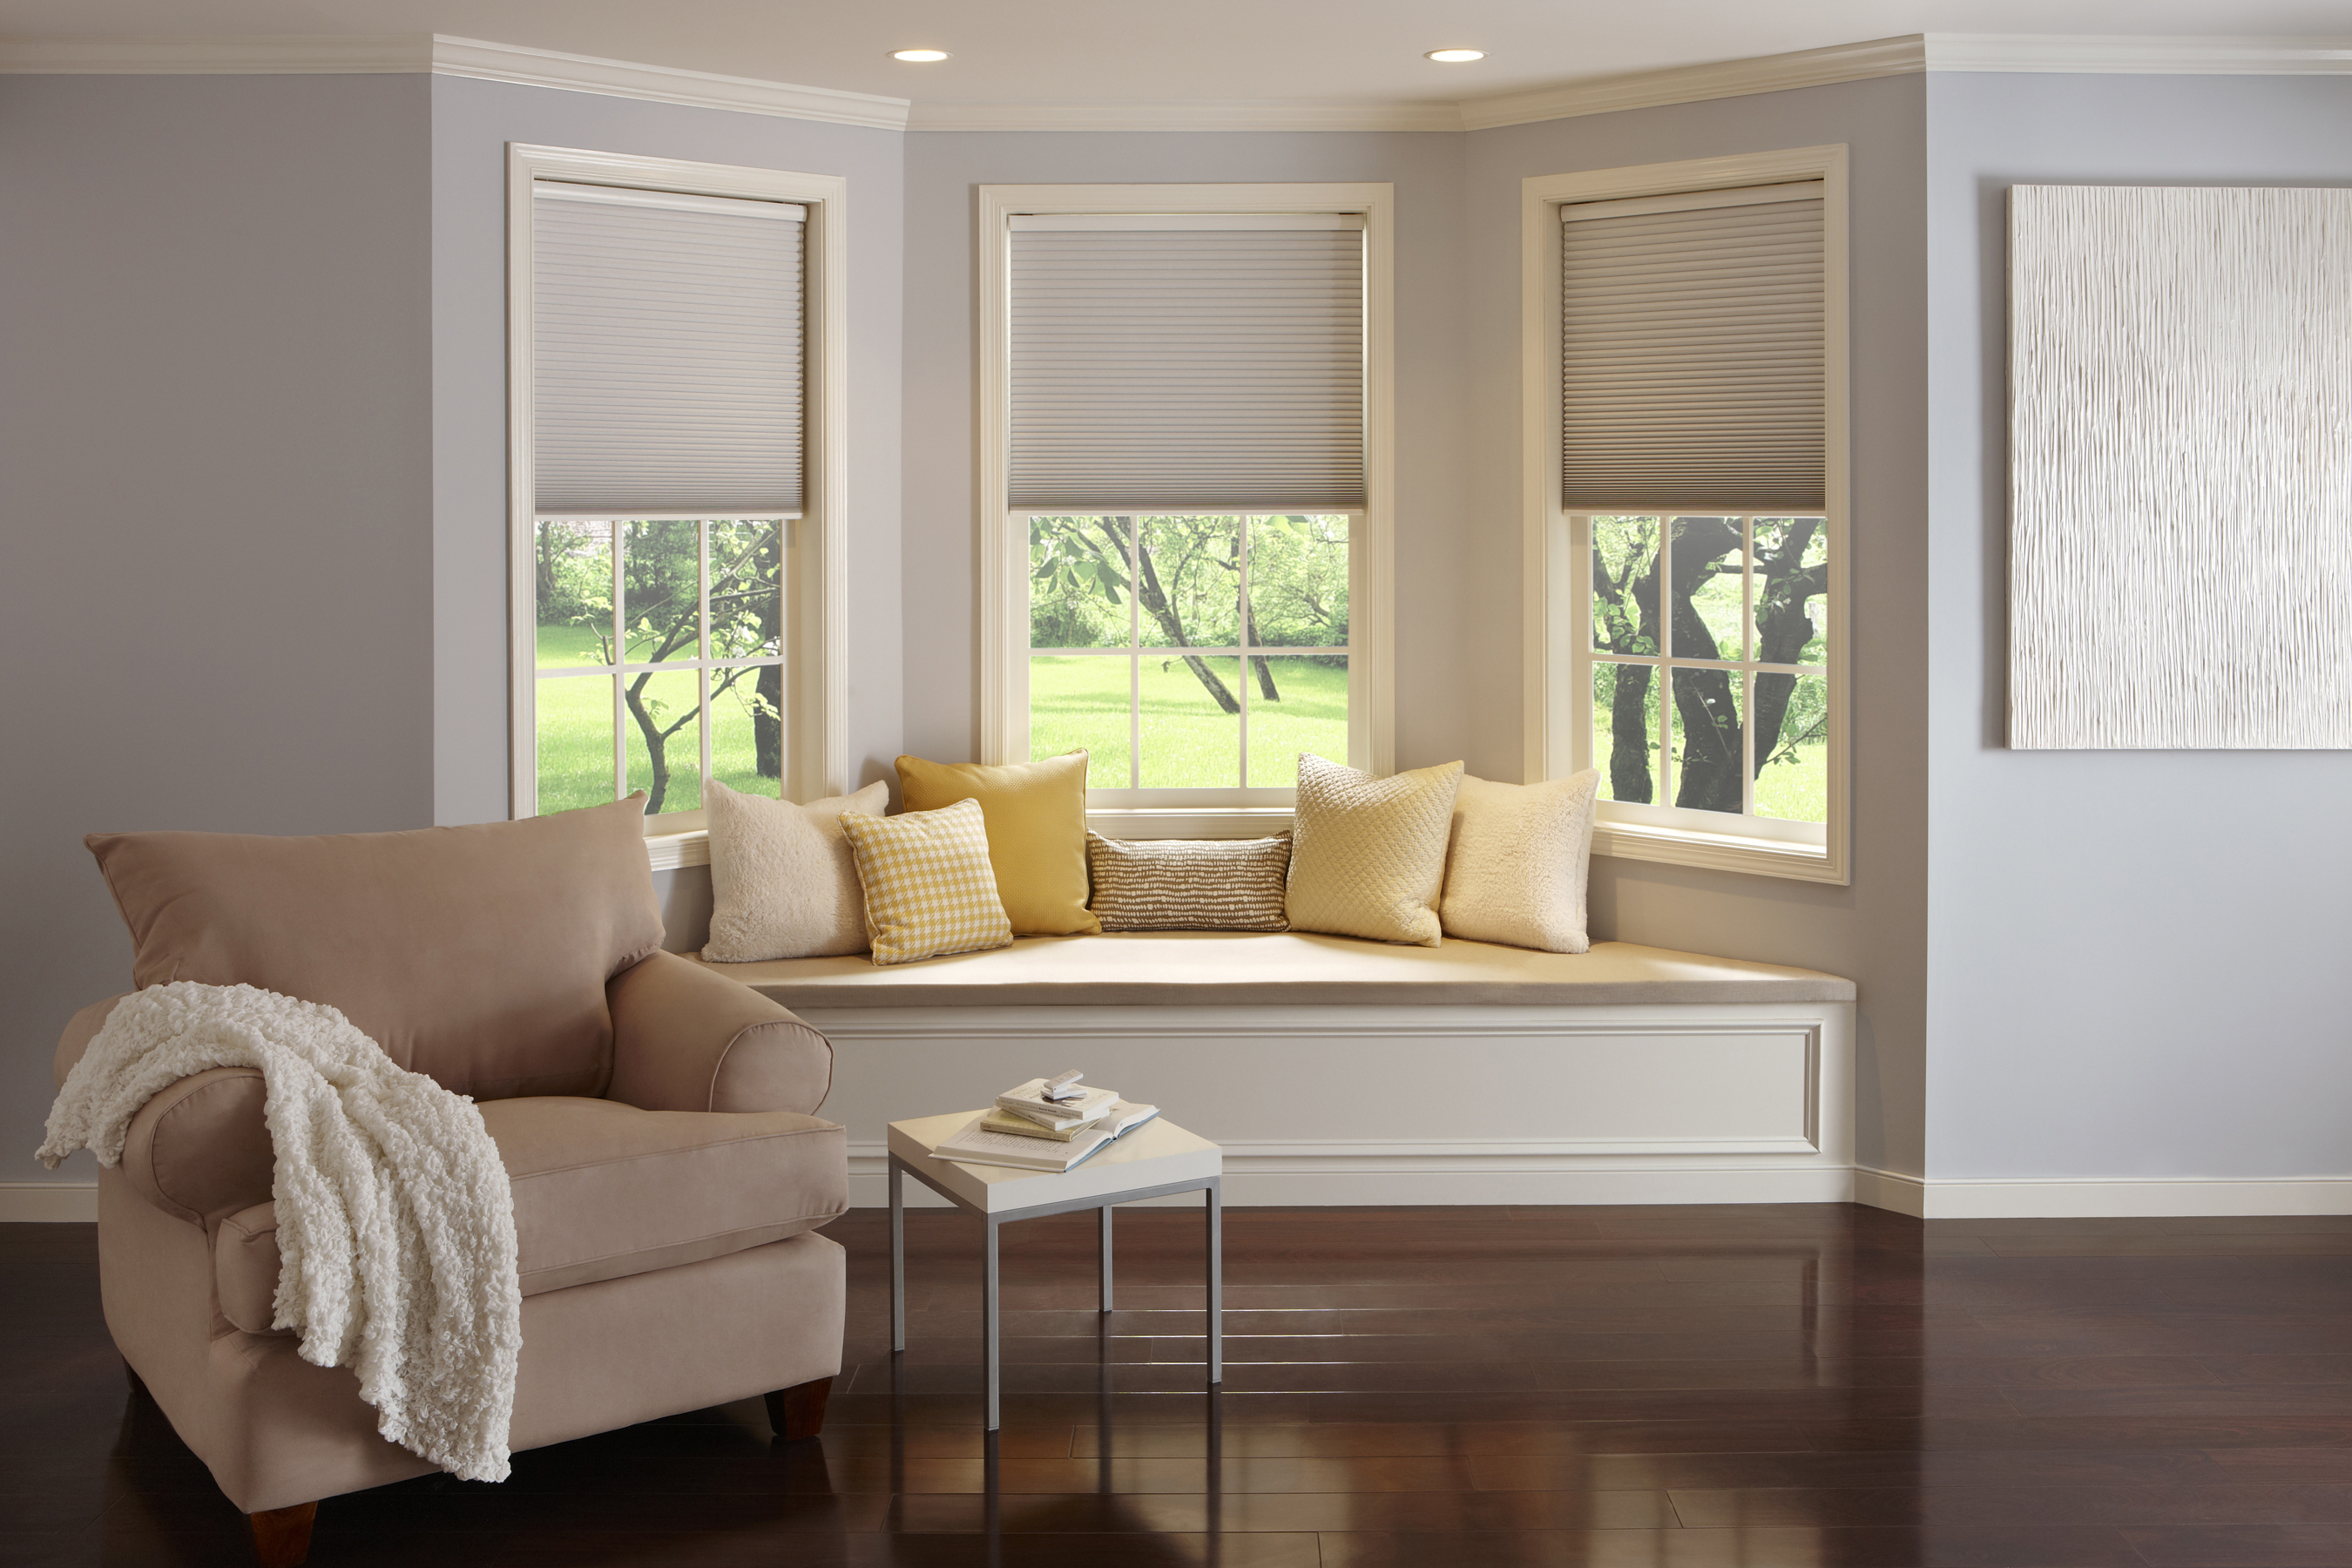 honeycomb shades motorized room darkening cellular shades | thehomedepot GVIIPFQ